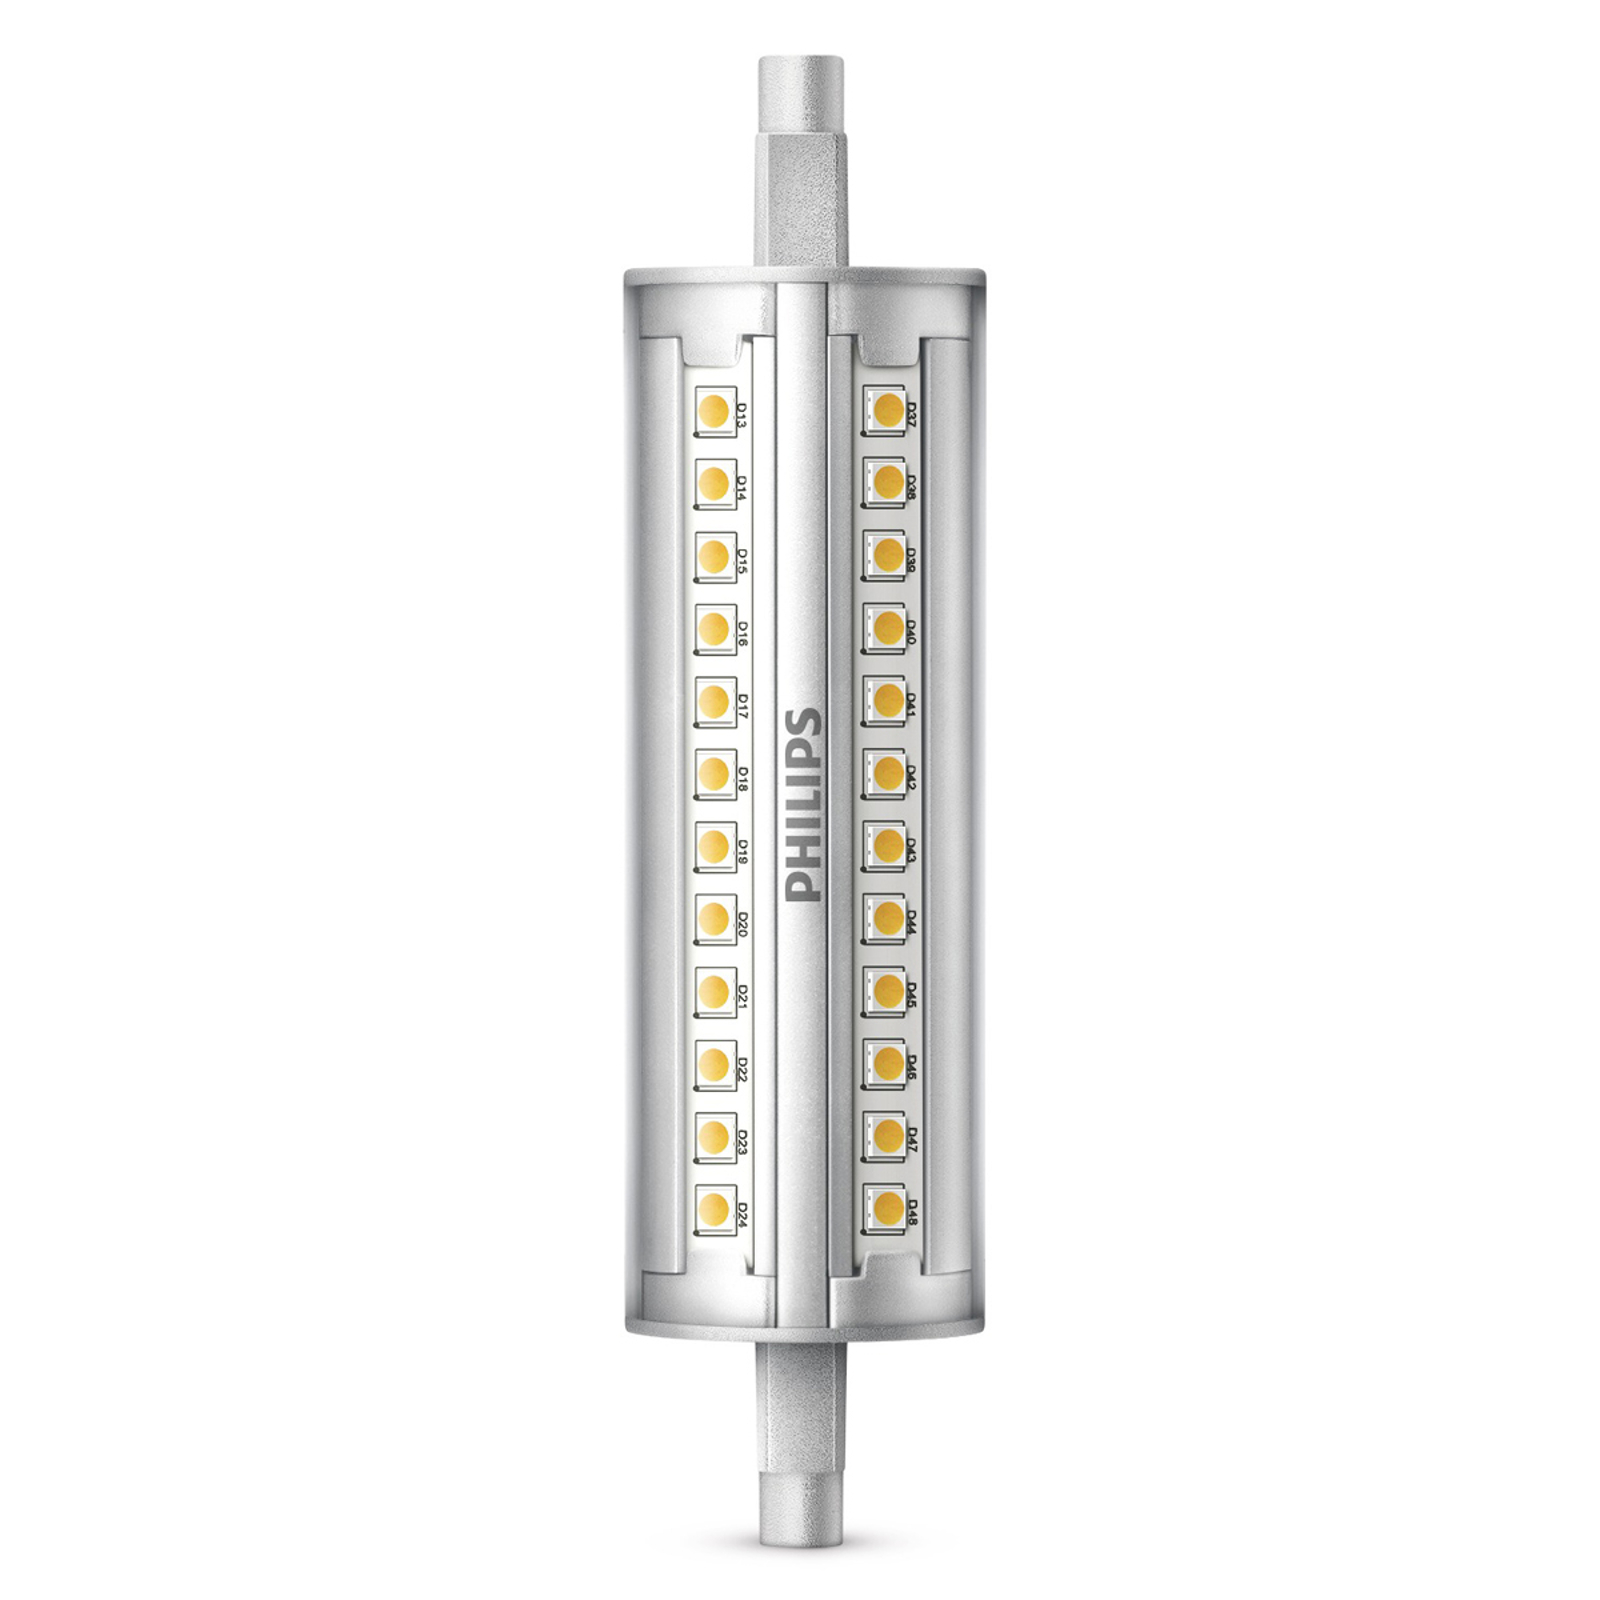 Philips R7s 14W 830 LED-Stablampe, dimmbar